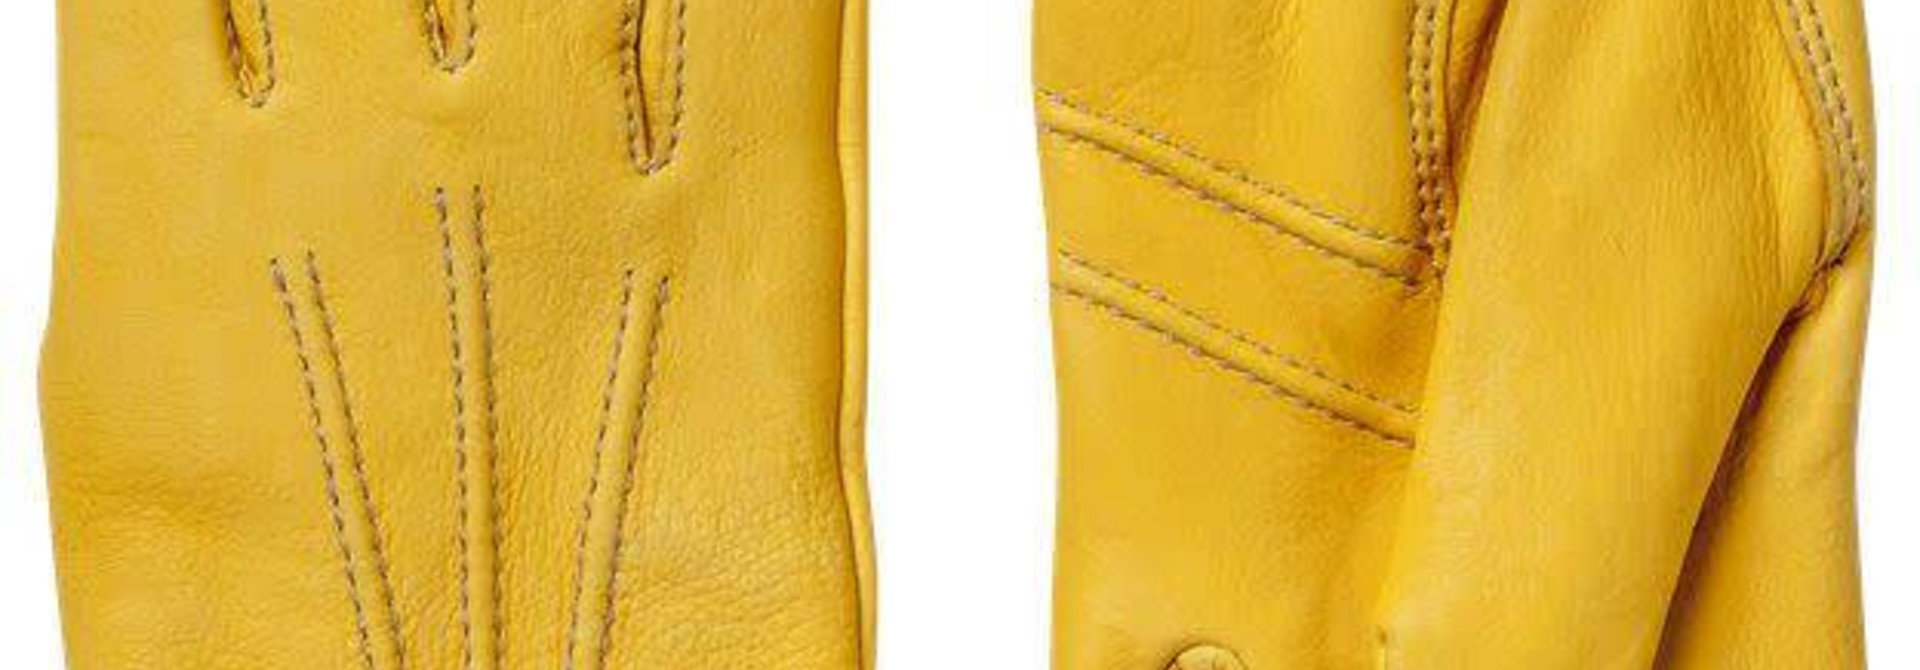 Andrew Deerskin Leather Gloves Natural Yellow